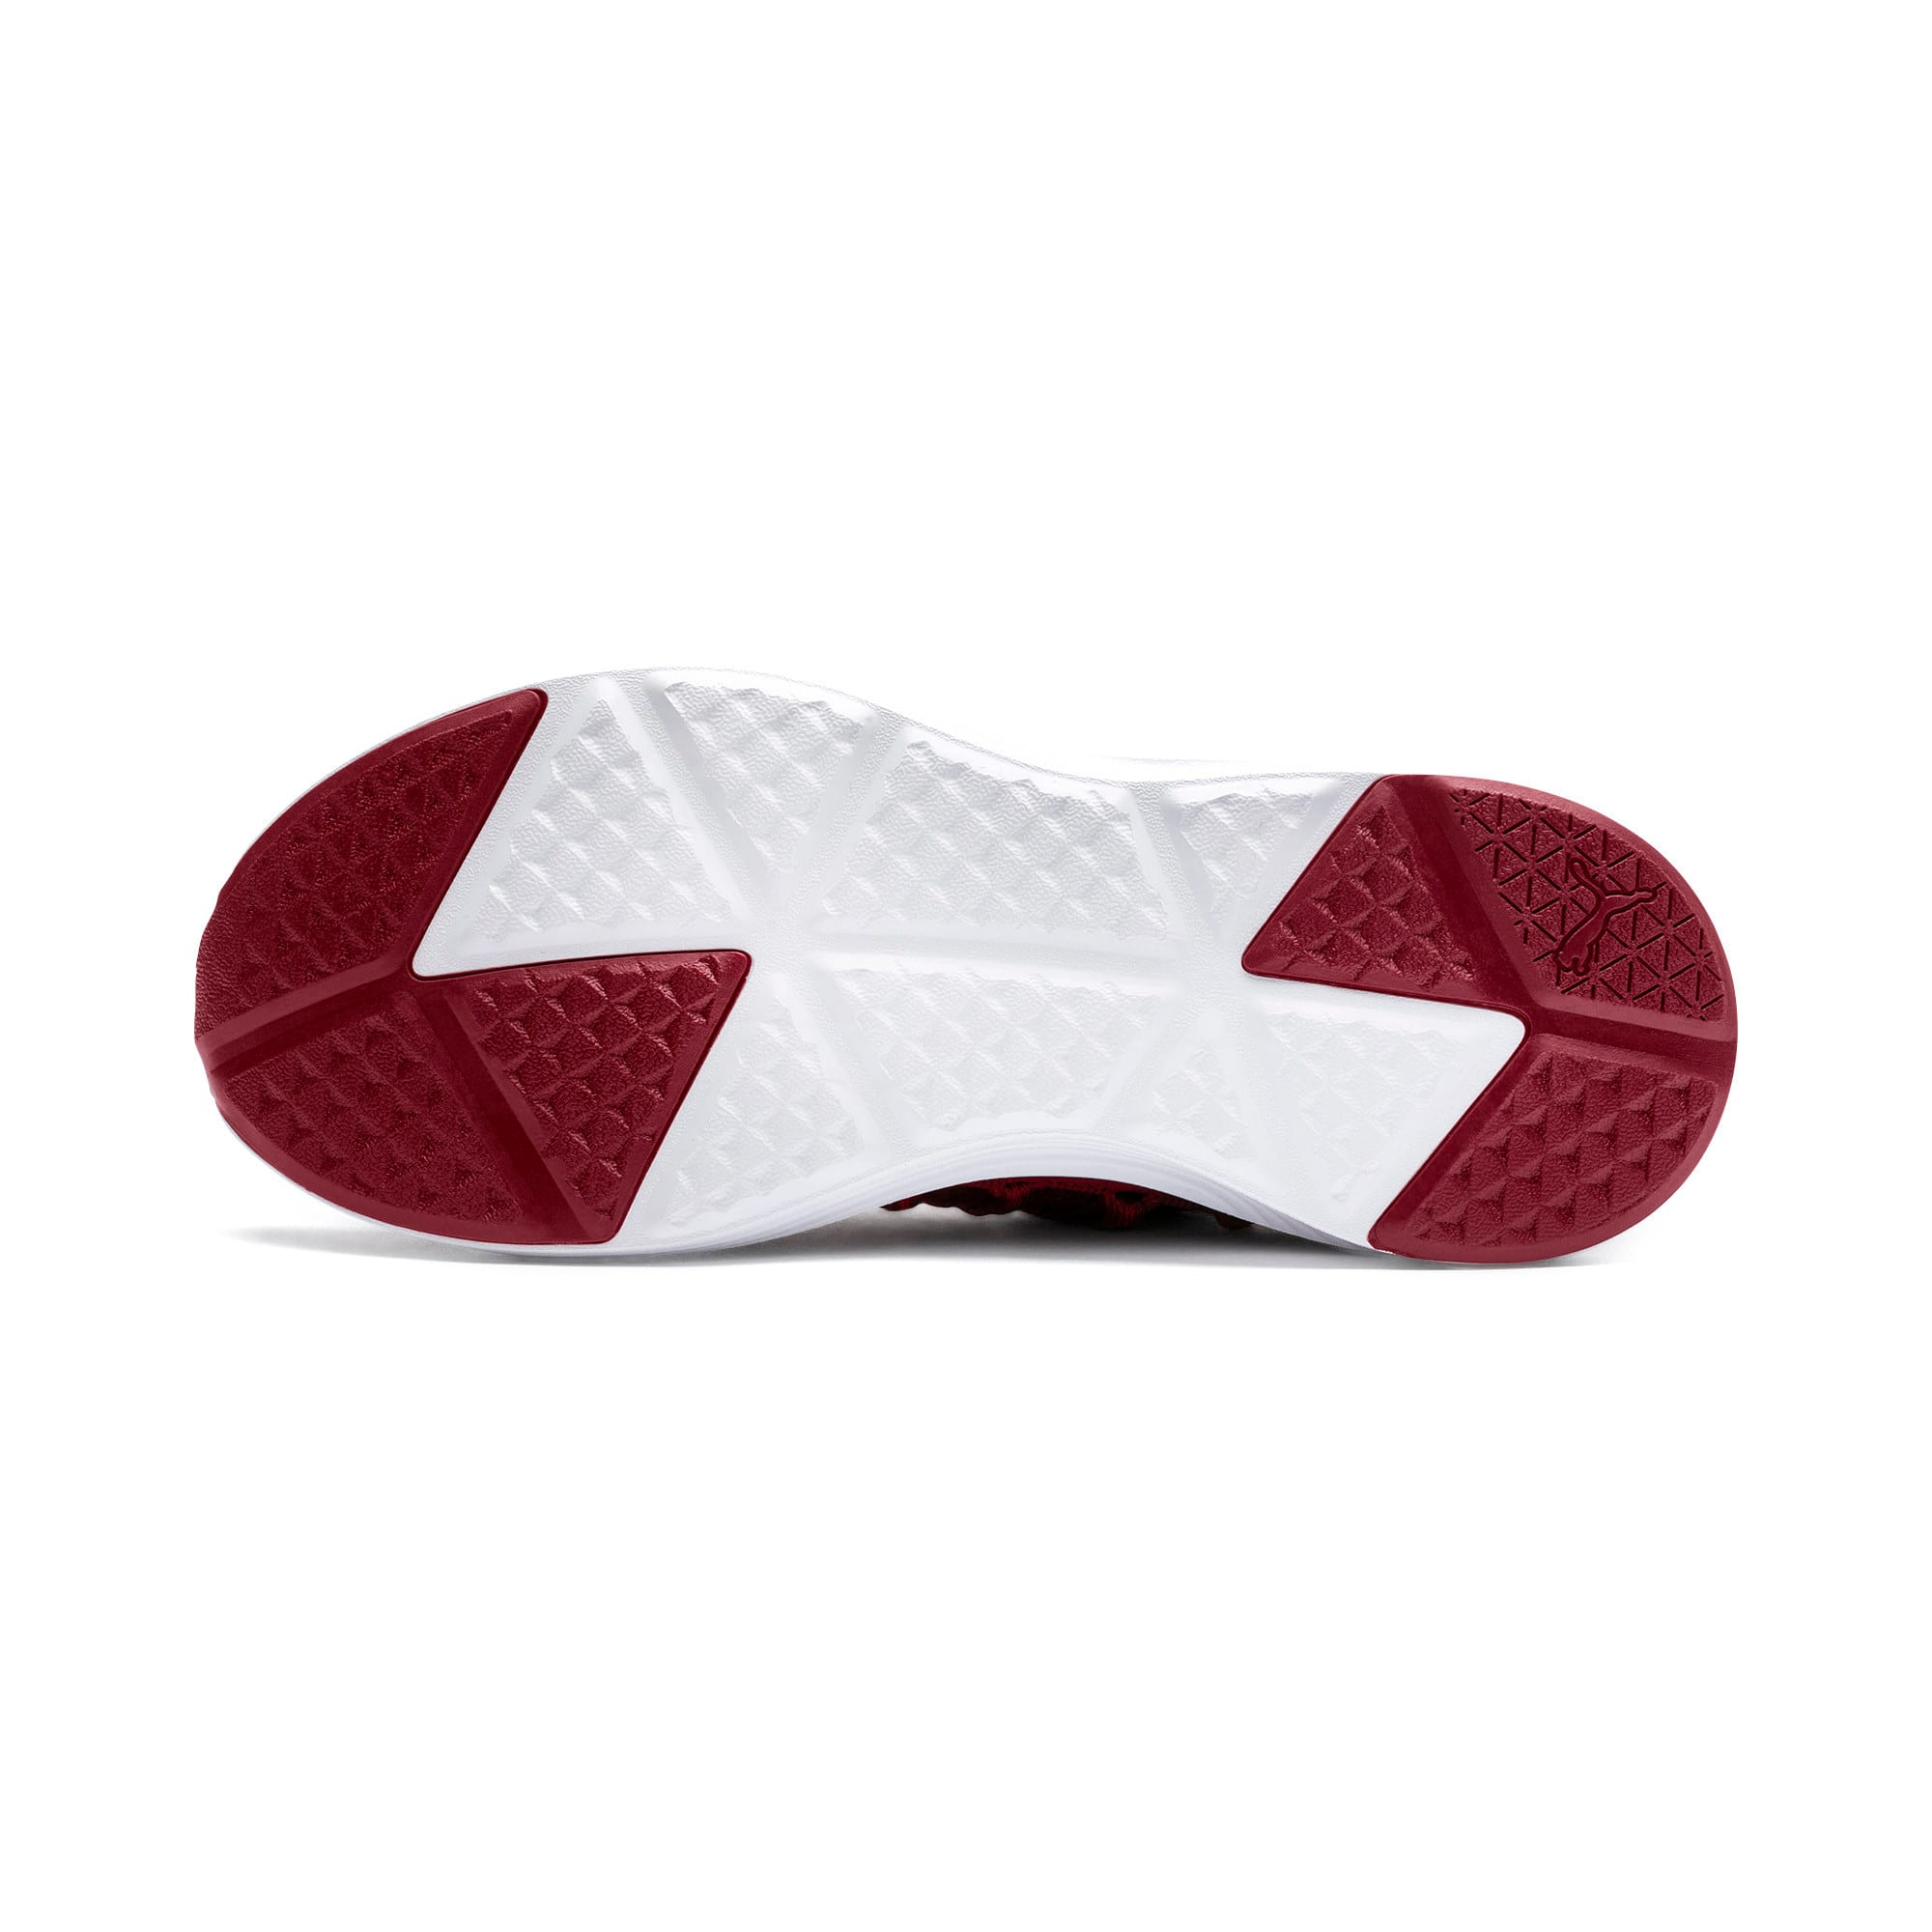 Thumbnail 4 of Prowl Alt 2 VT Wn s Puma Black-Puma Whit, Pomegranate-Puma White, medium-IND